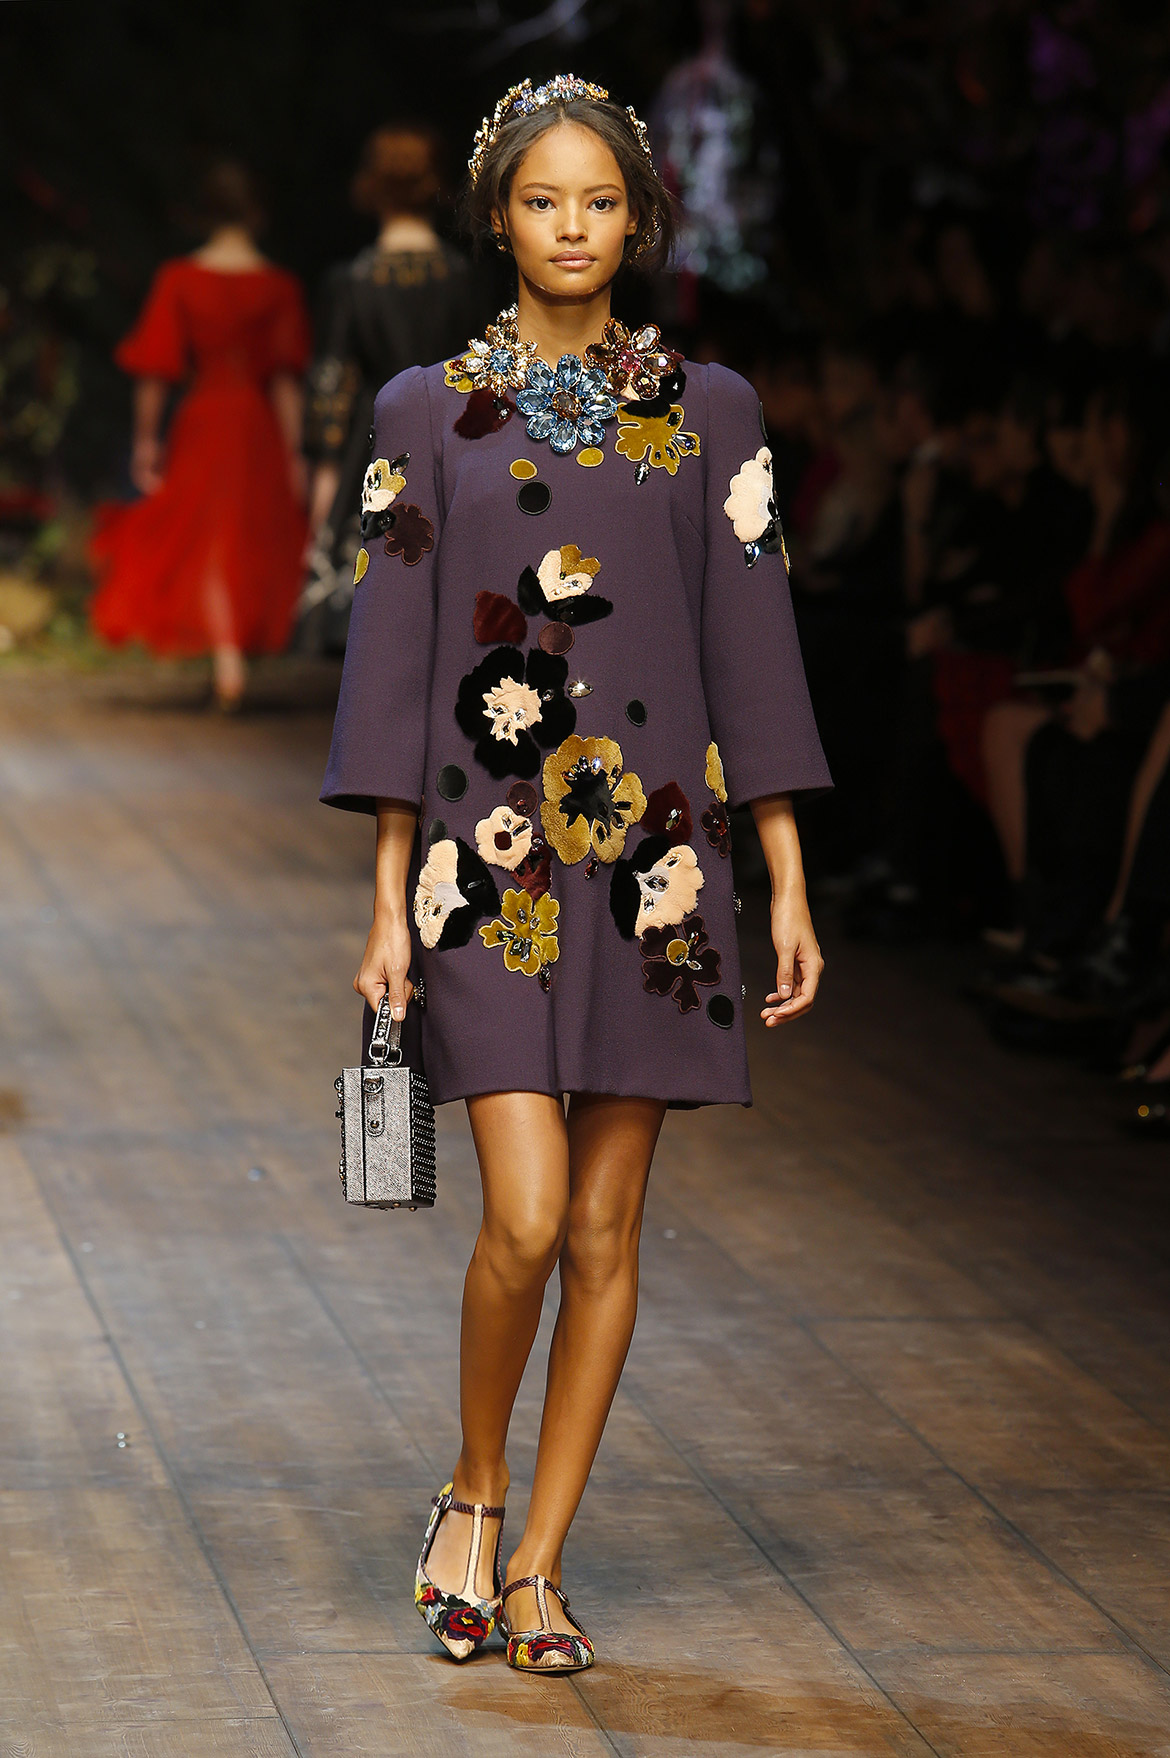 dolce-and-gabbana-fw-2014-2015-women-fashion-show-runway (6)